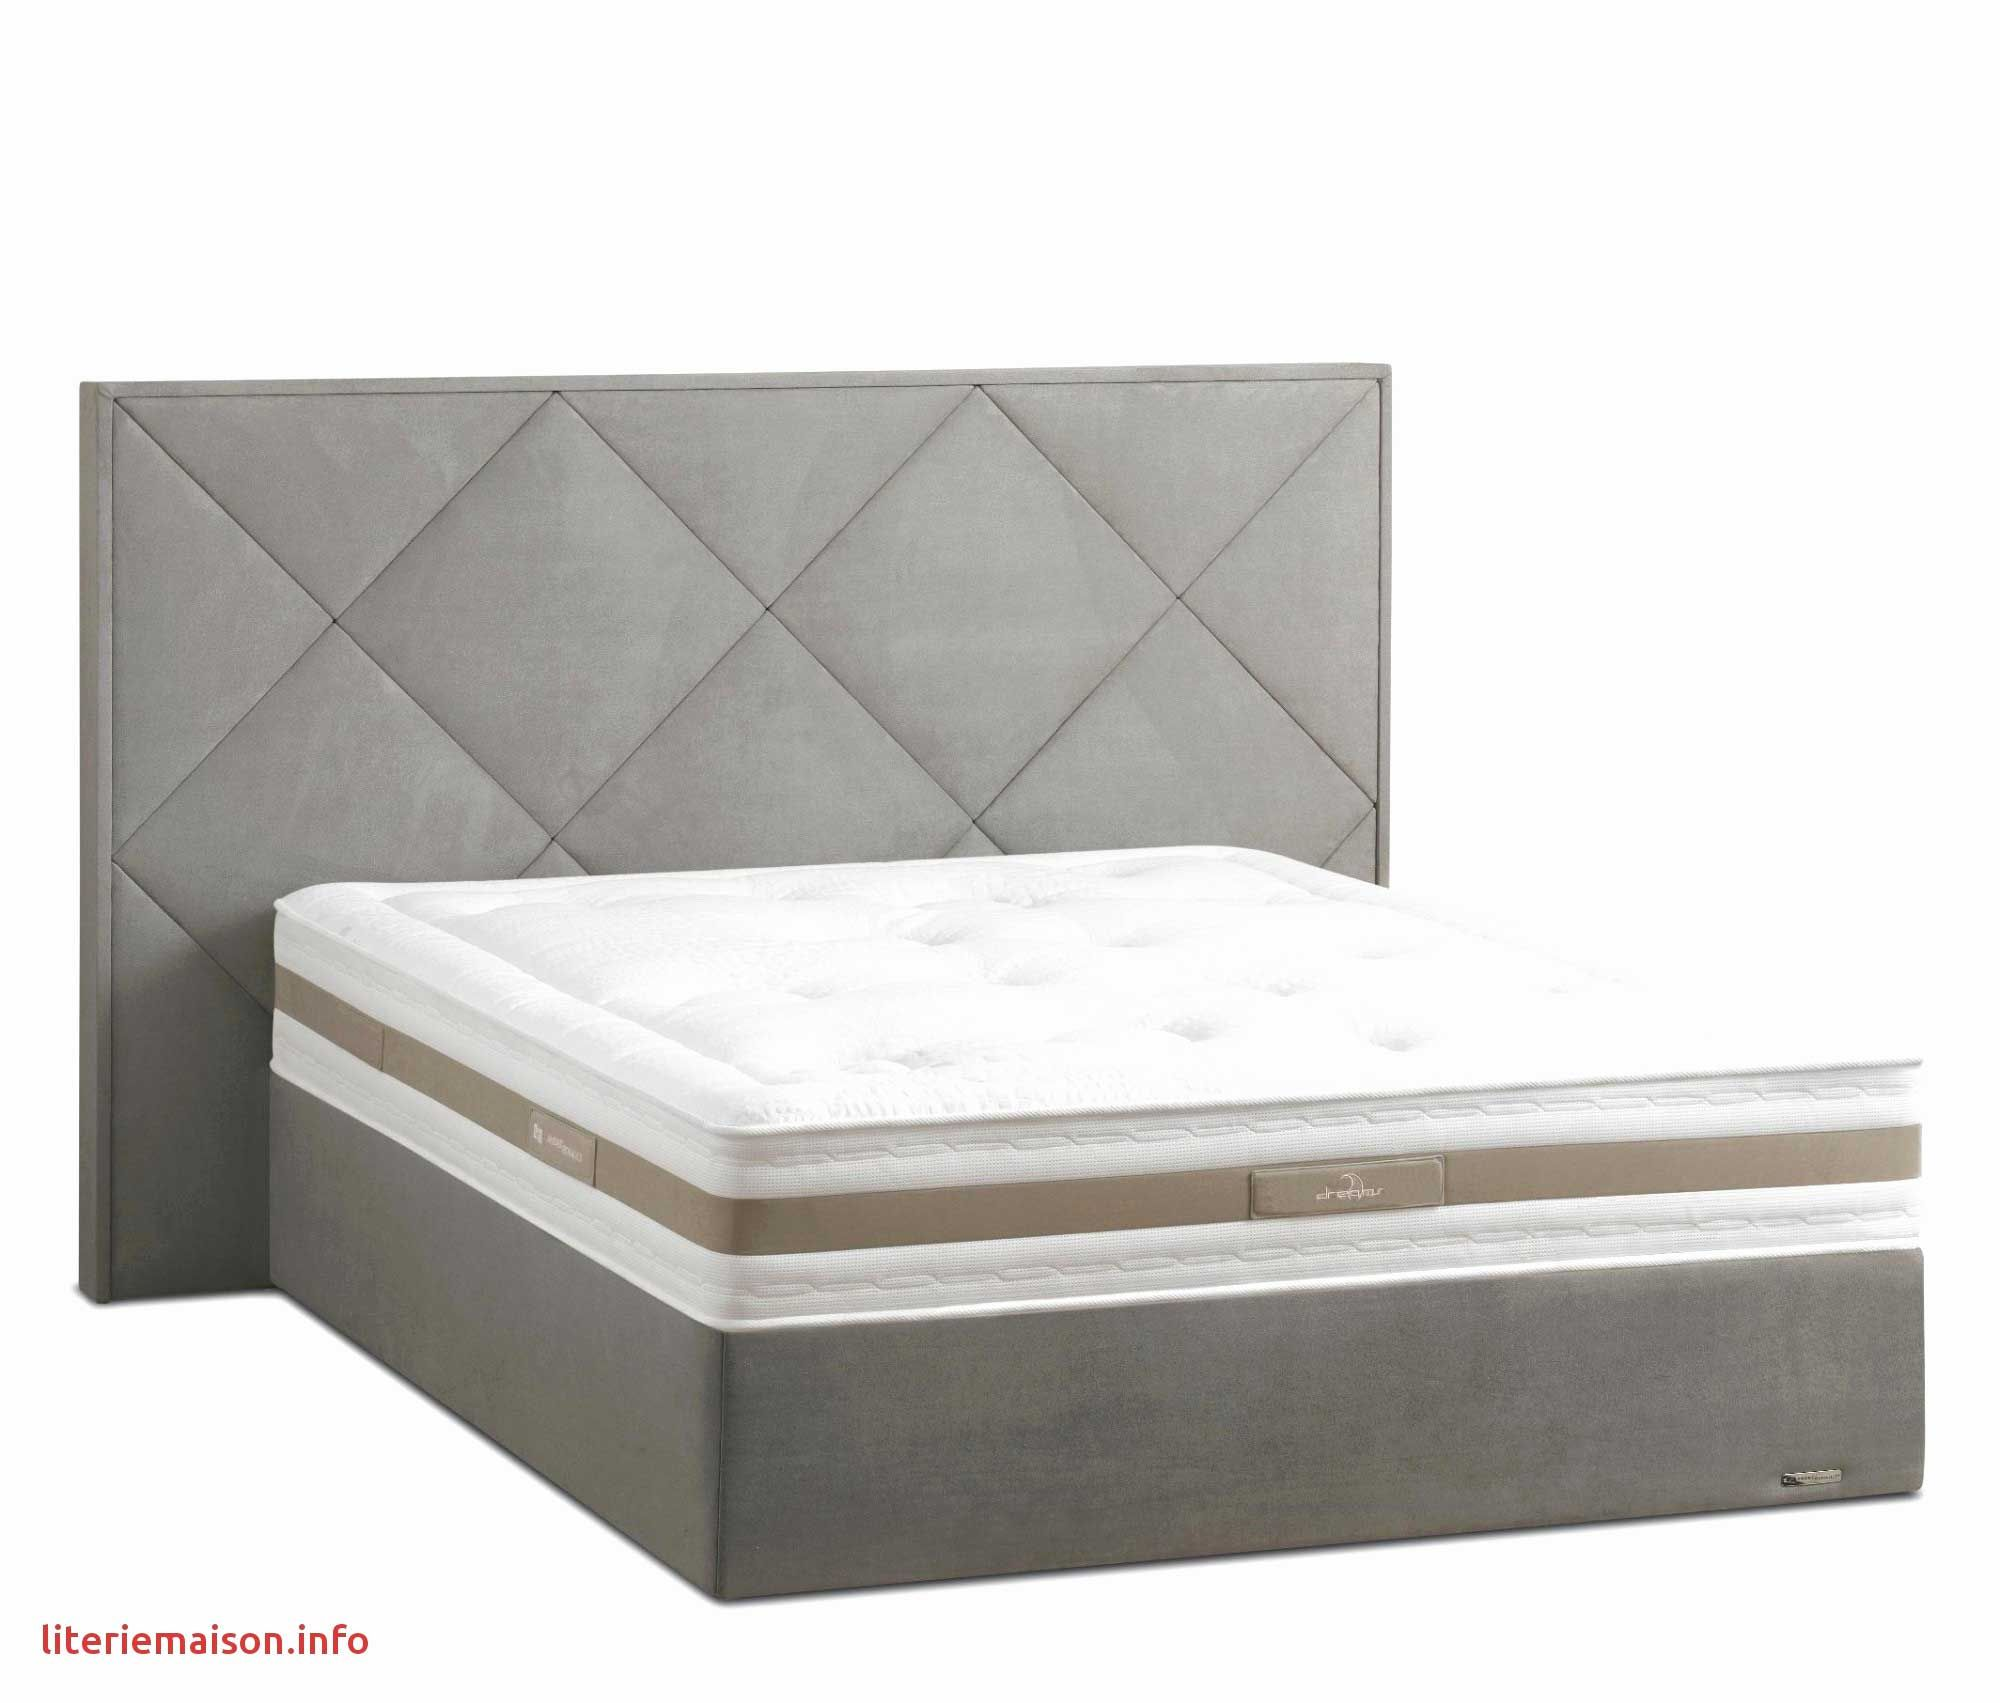 Lit Bois 160 215 200 Frais Lit Bois 160c297200 Unique Lit 2 Places Blanc Conforama Lit Mezza In 2020 Furniture Mattress Bed